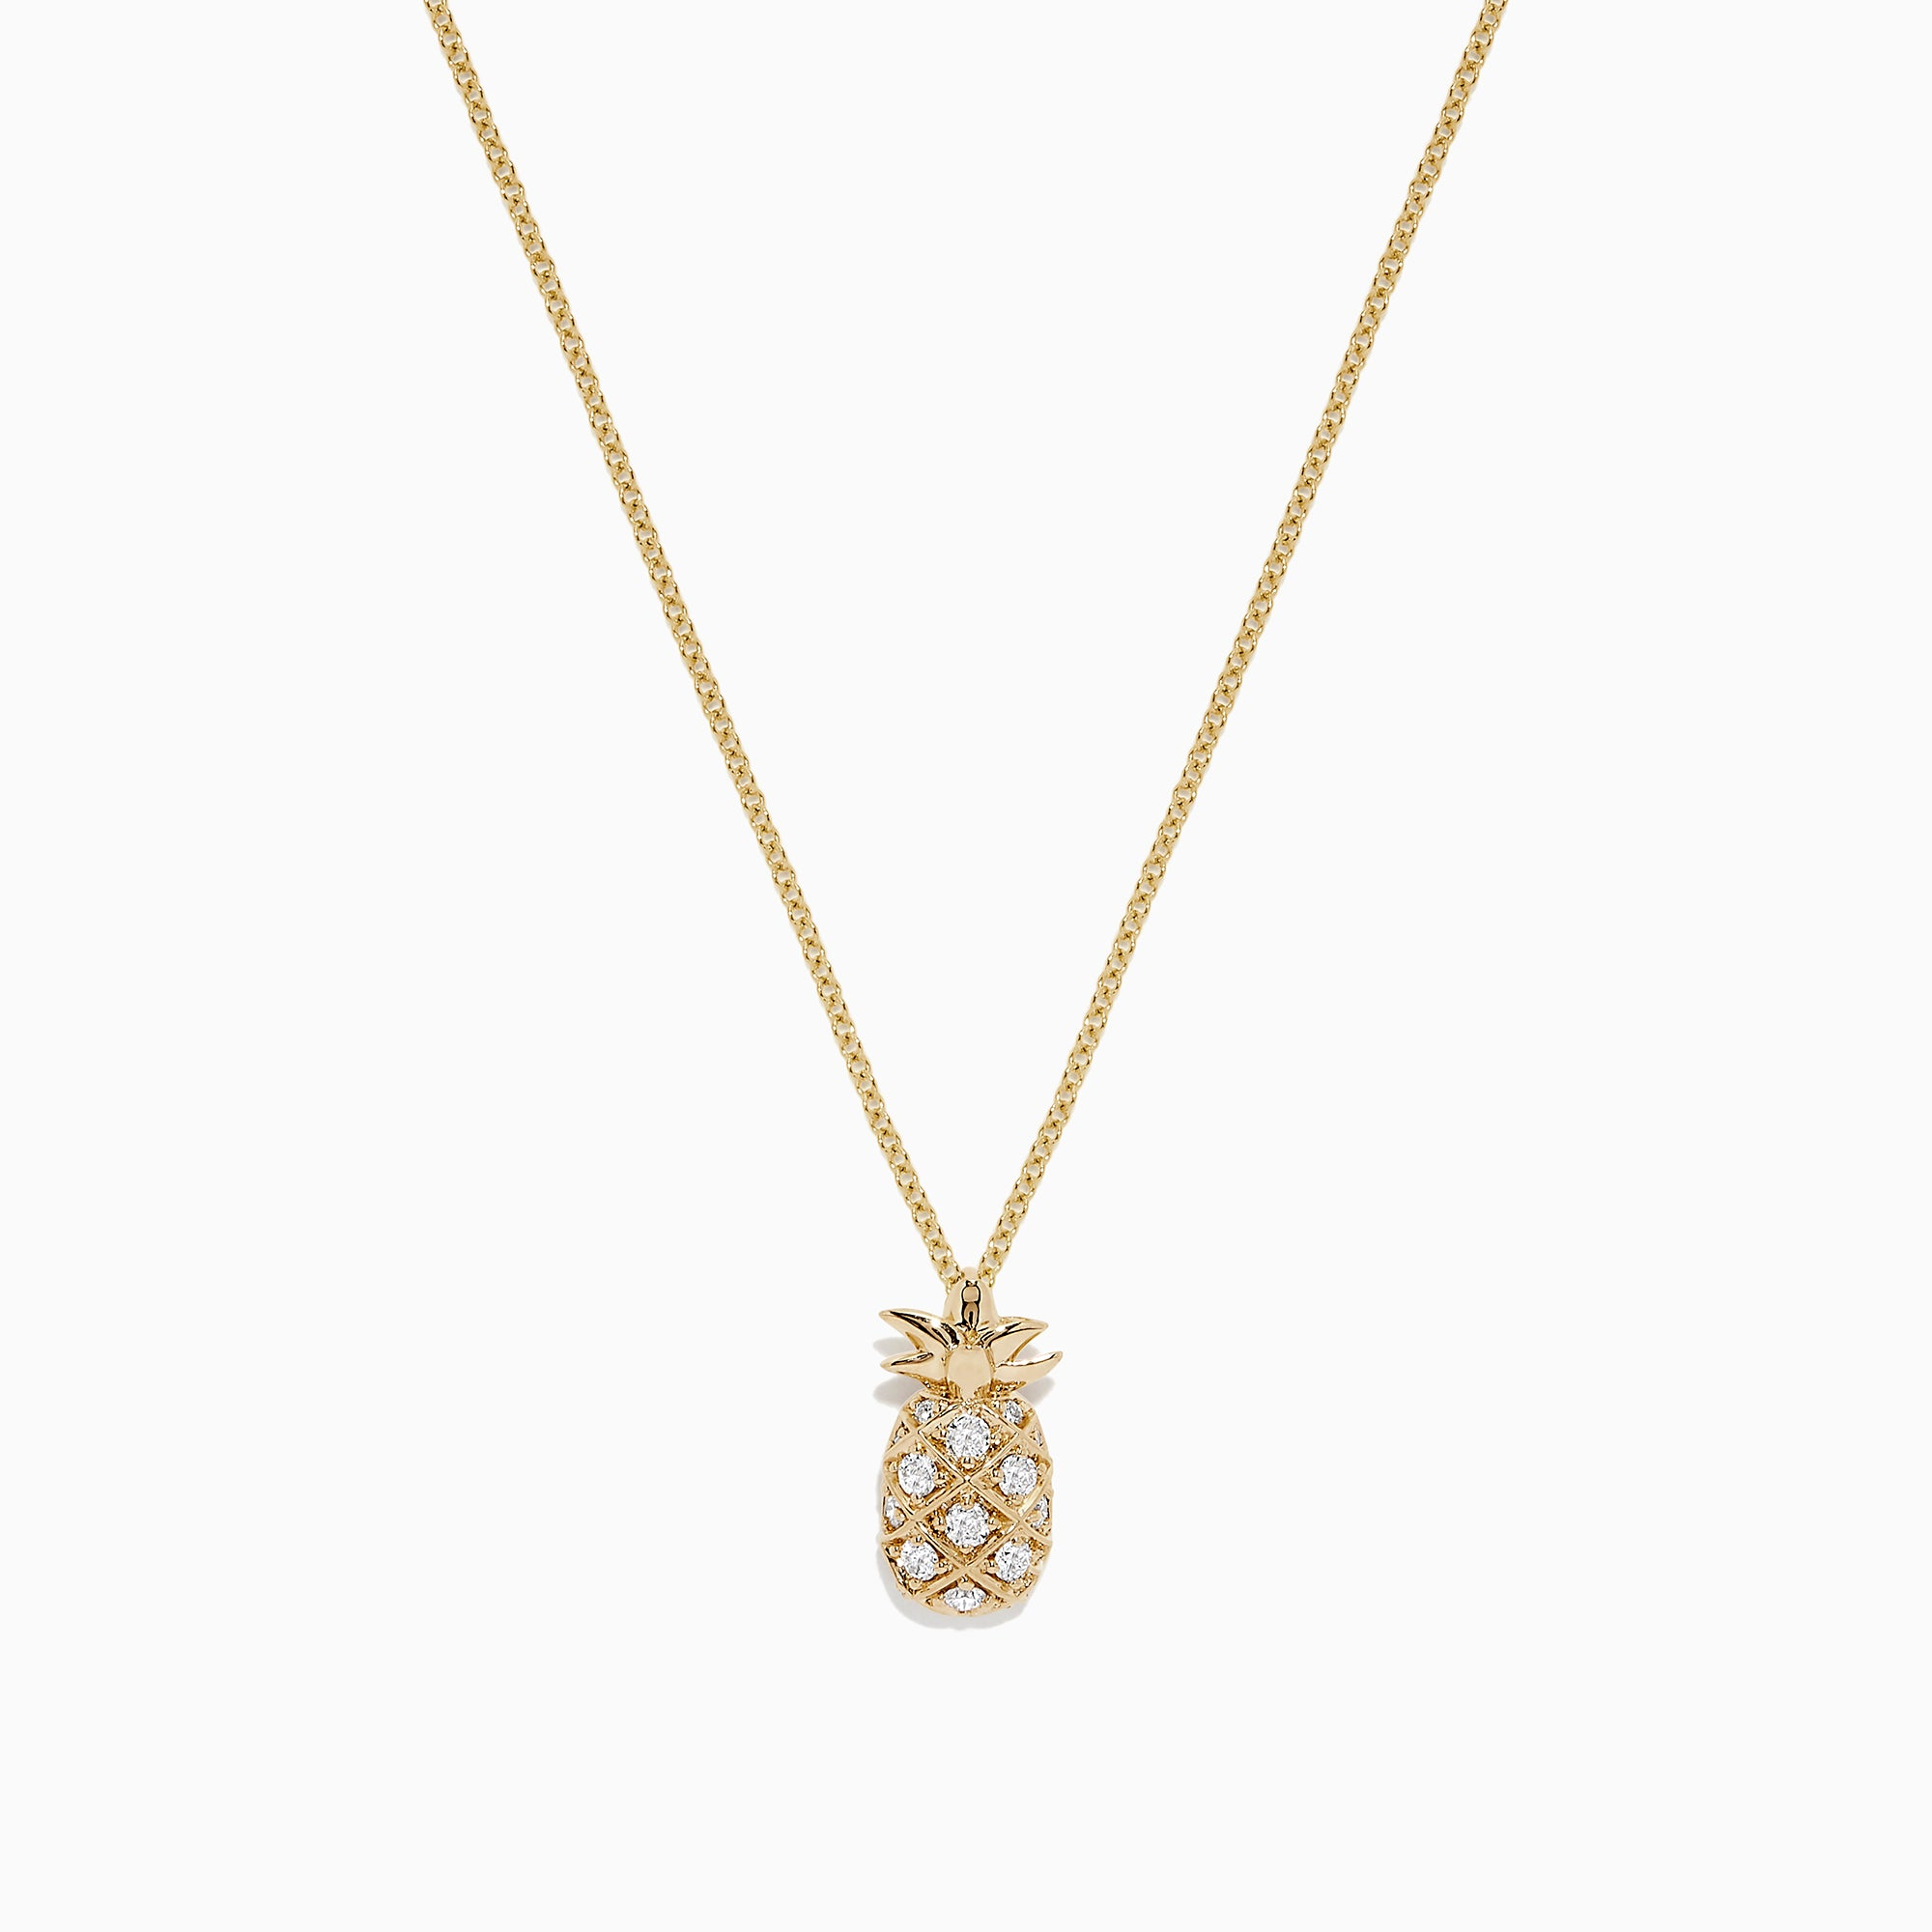 Effy Novelty 14K Yellow Gold Diamond Pineapple Pendant, 0.26 TCW